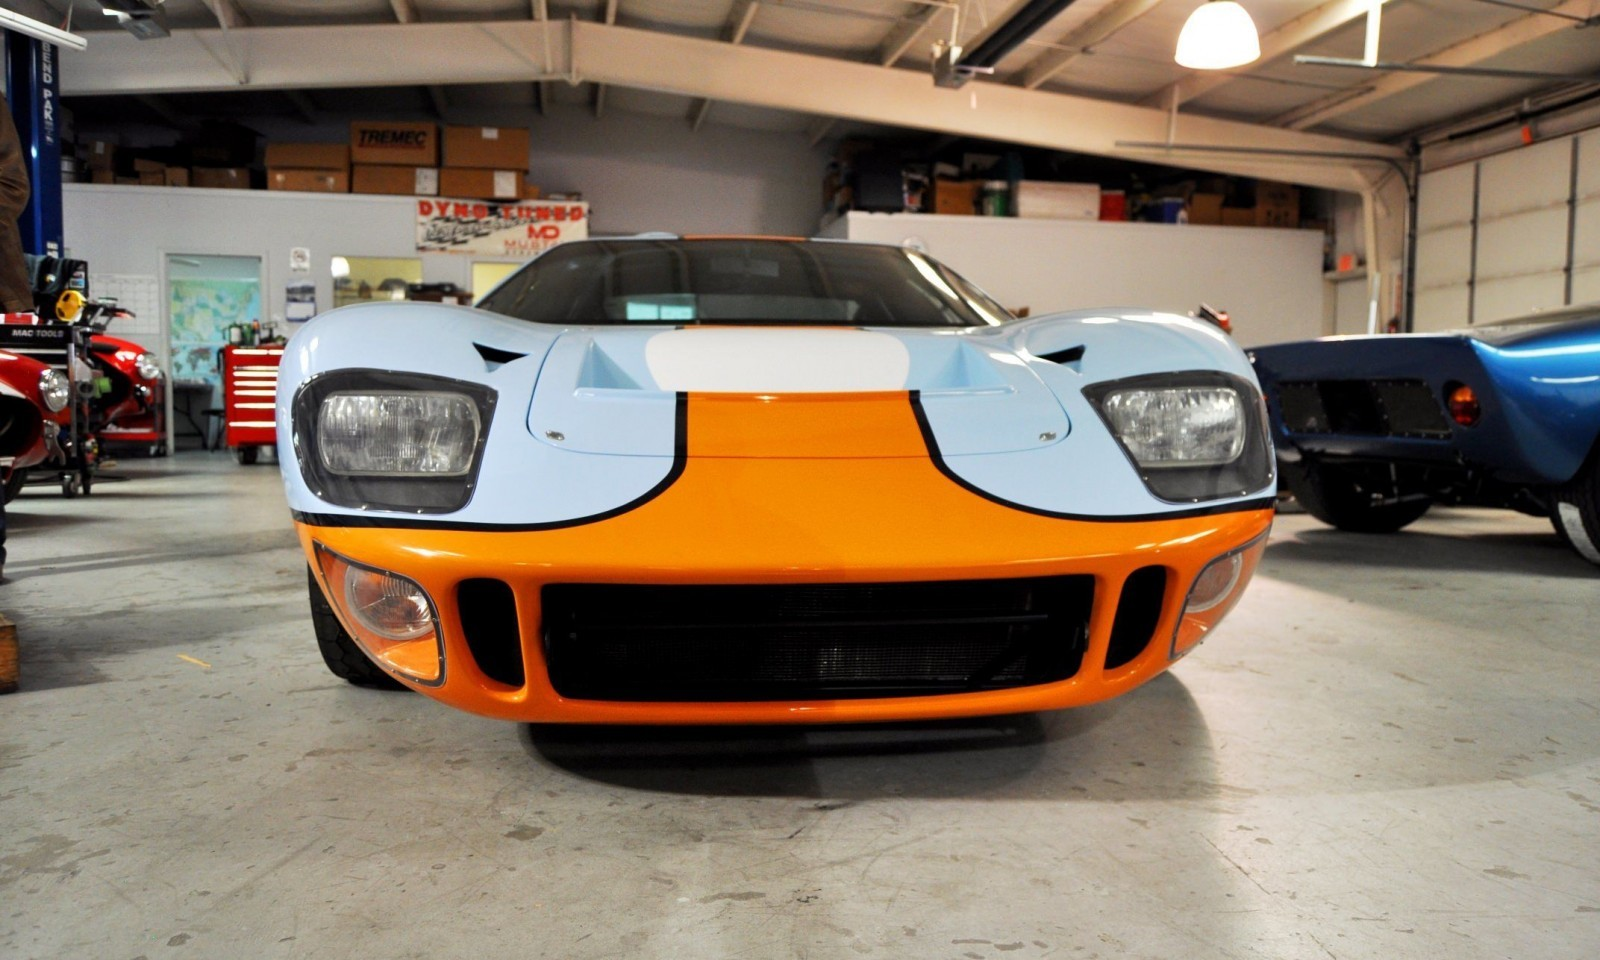 2014 Superformance GT40 Mark I - MEGA Photo Shoot and Ride-Along Videos 2